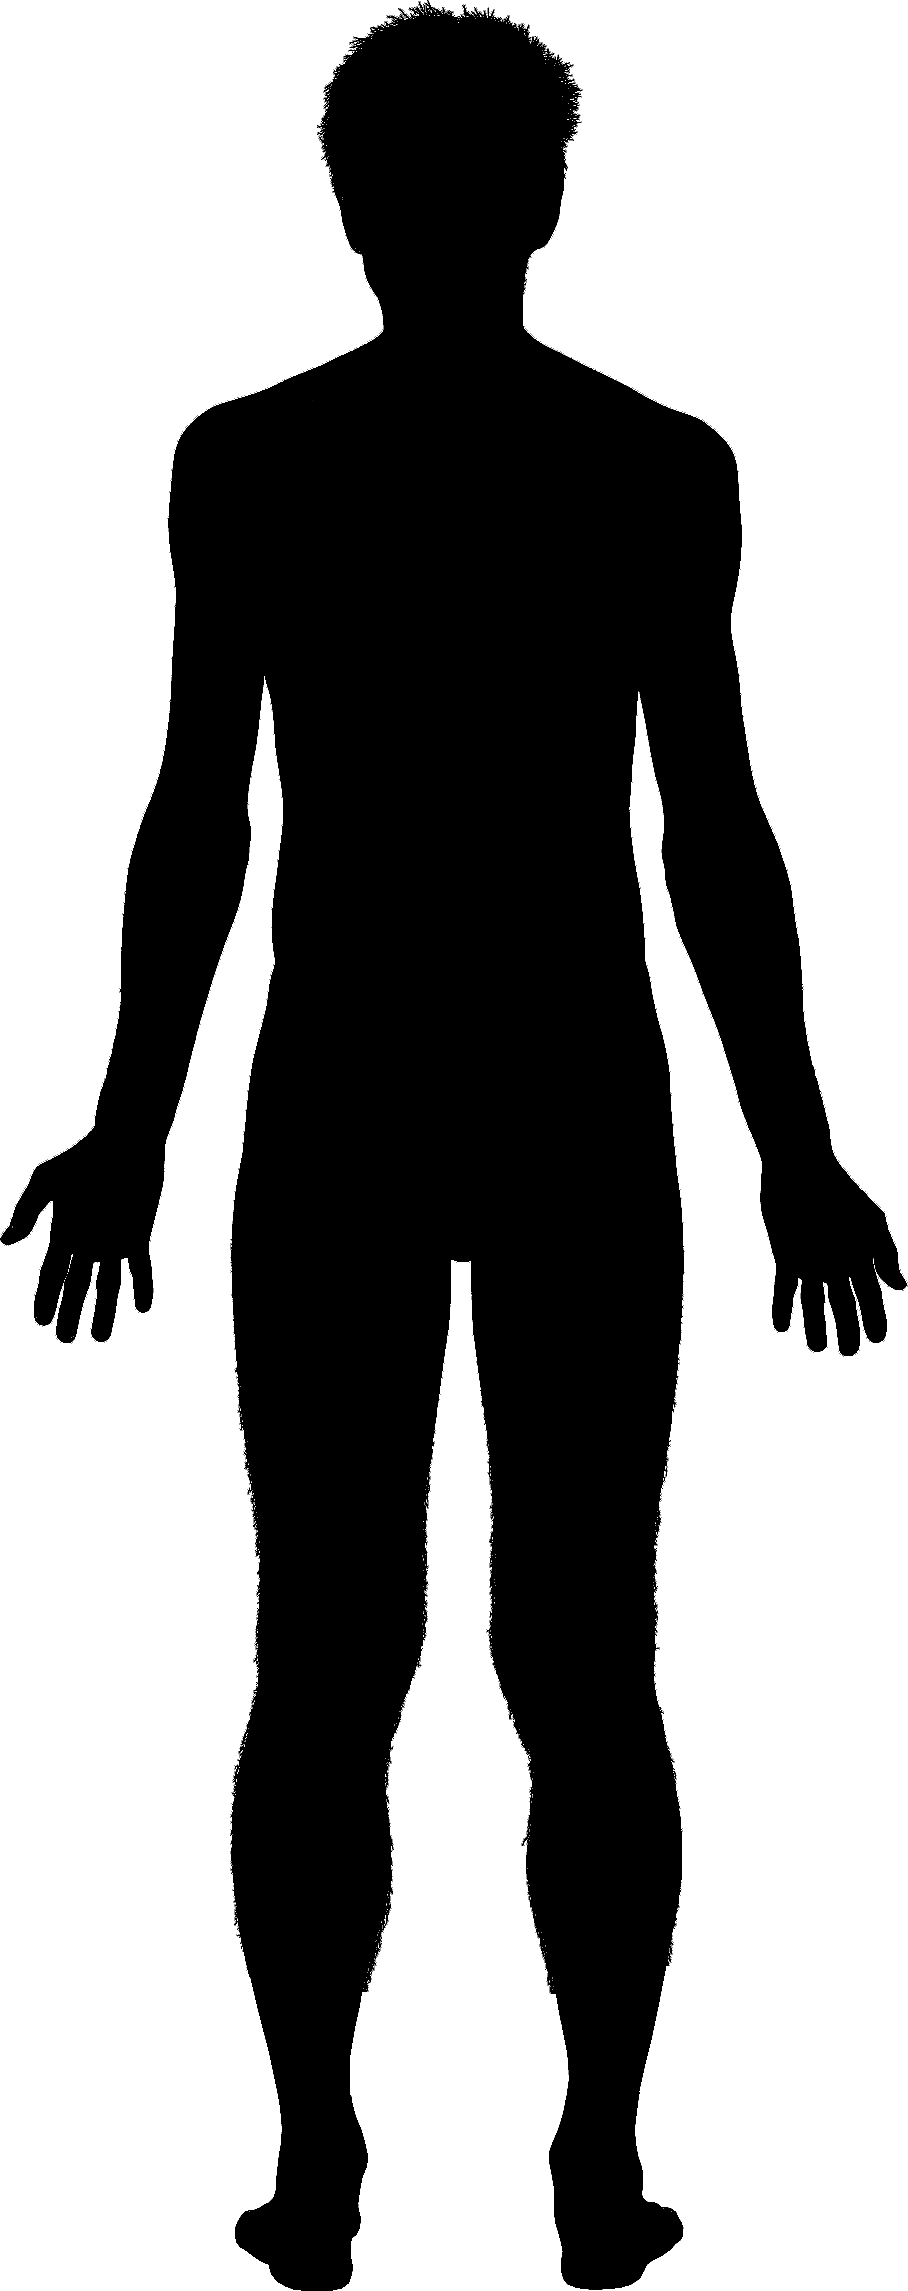 908 x 2291 · 39 kB · png, Man Body Outline